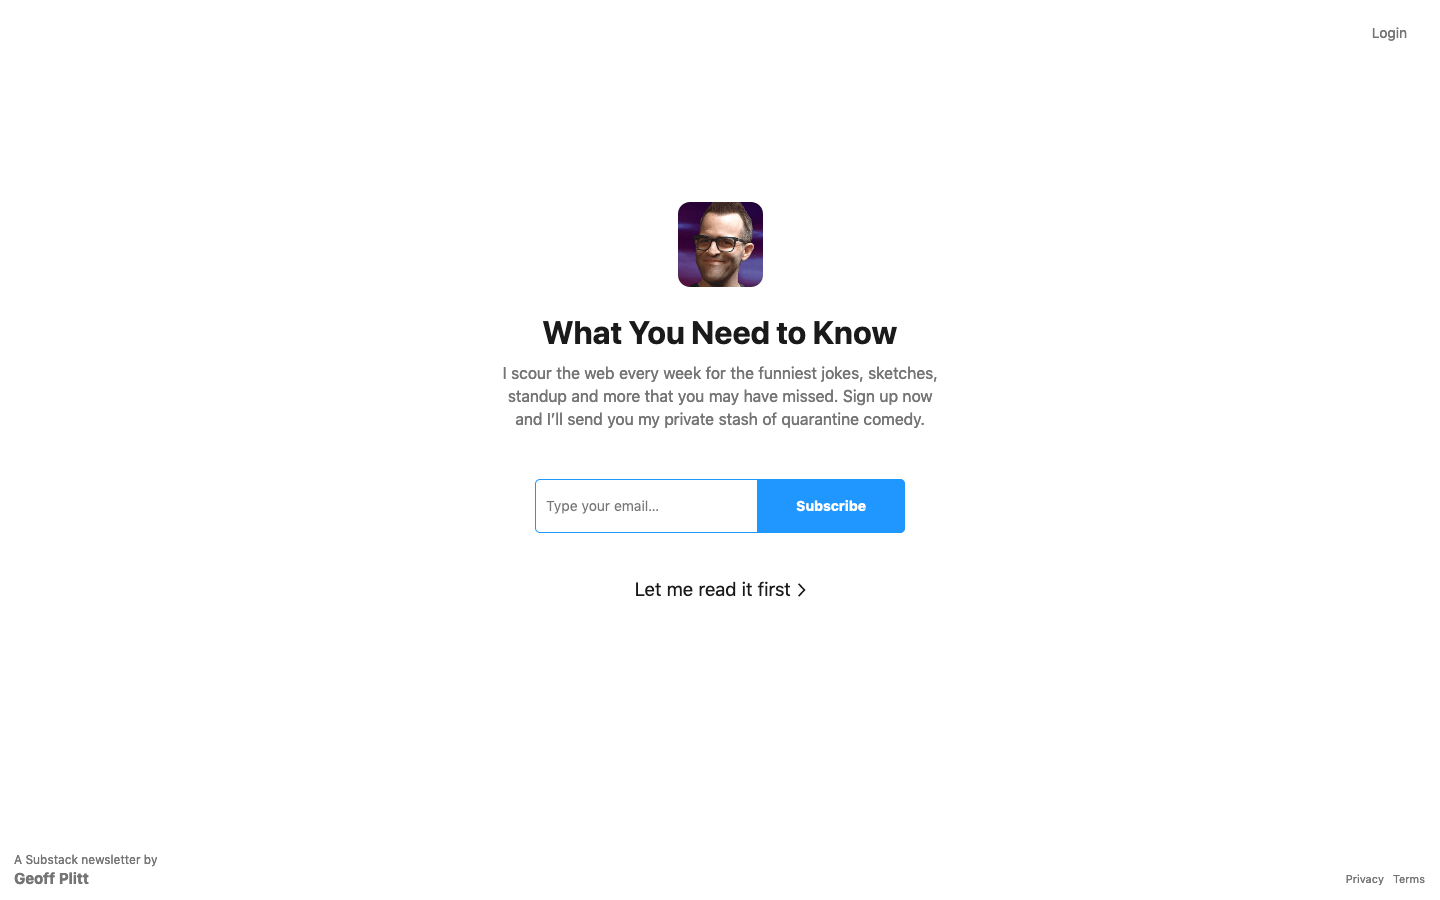 What You Need to Know homepage